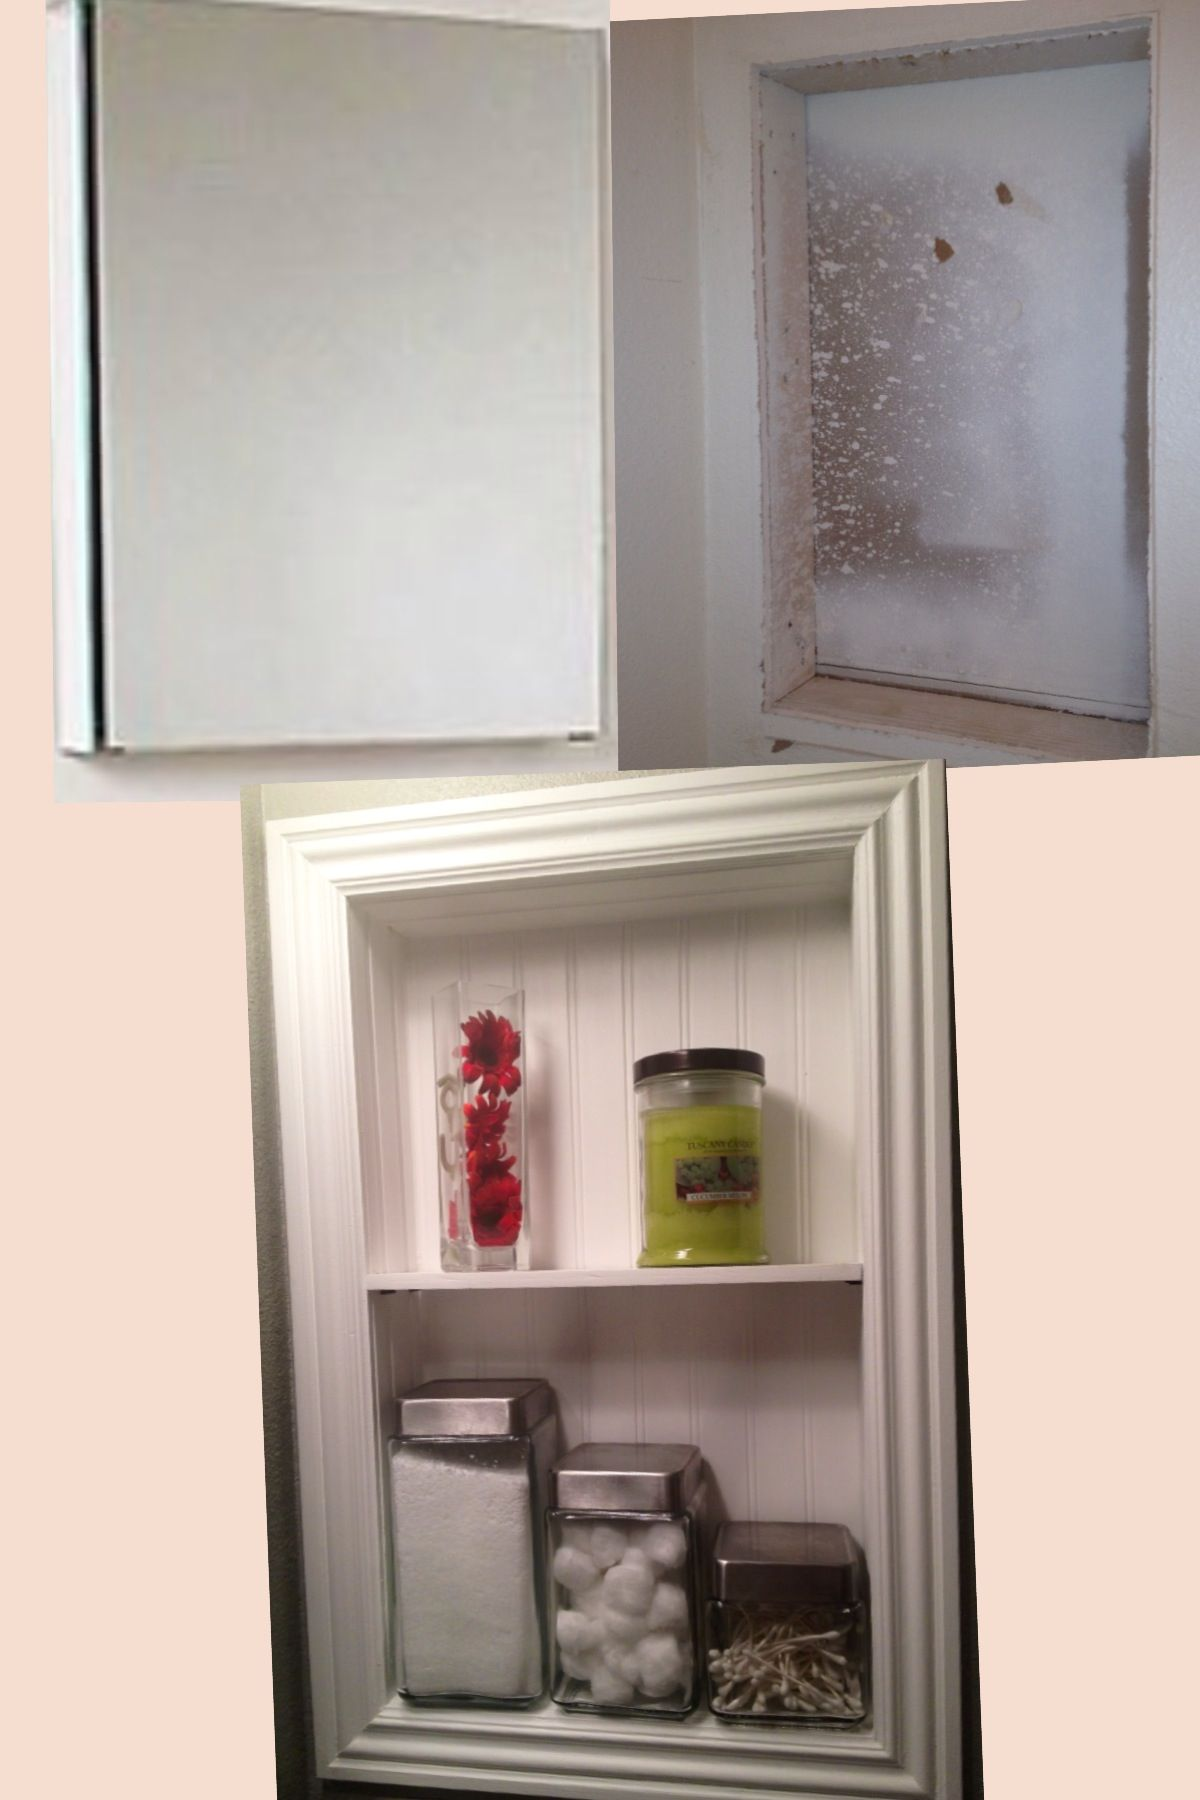 Replacing Mirrored Medicine Cabinet For An Inset Wainscoting